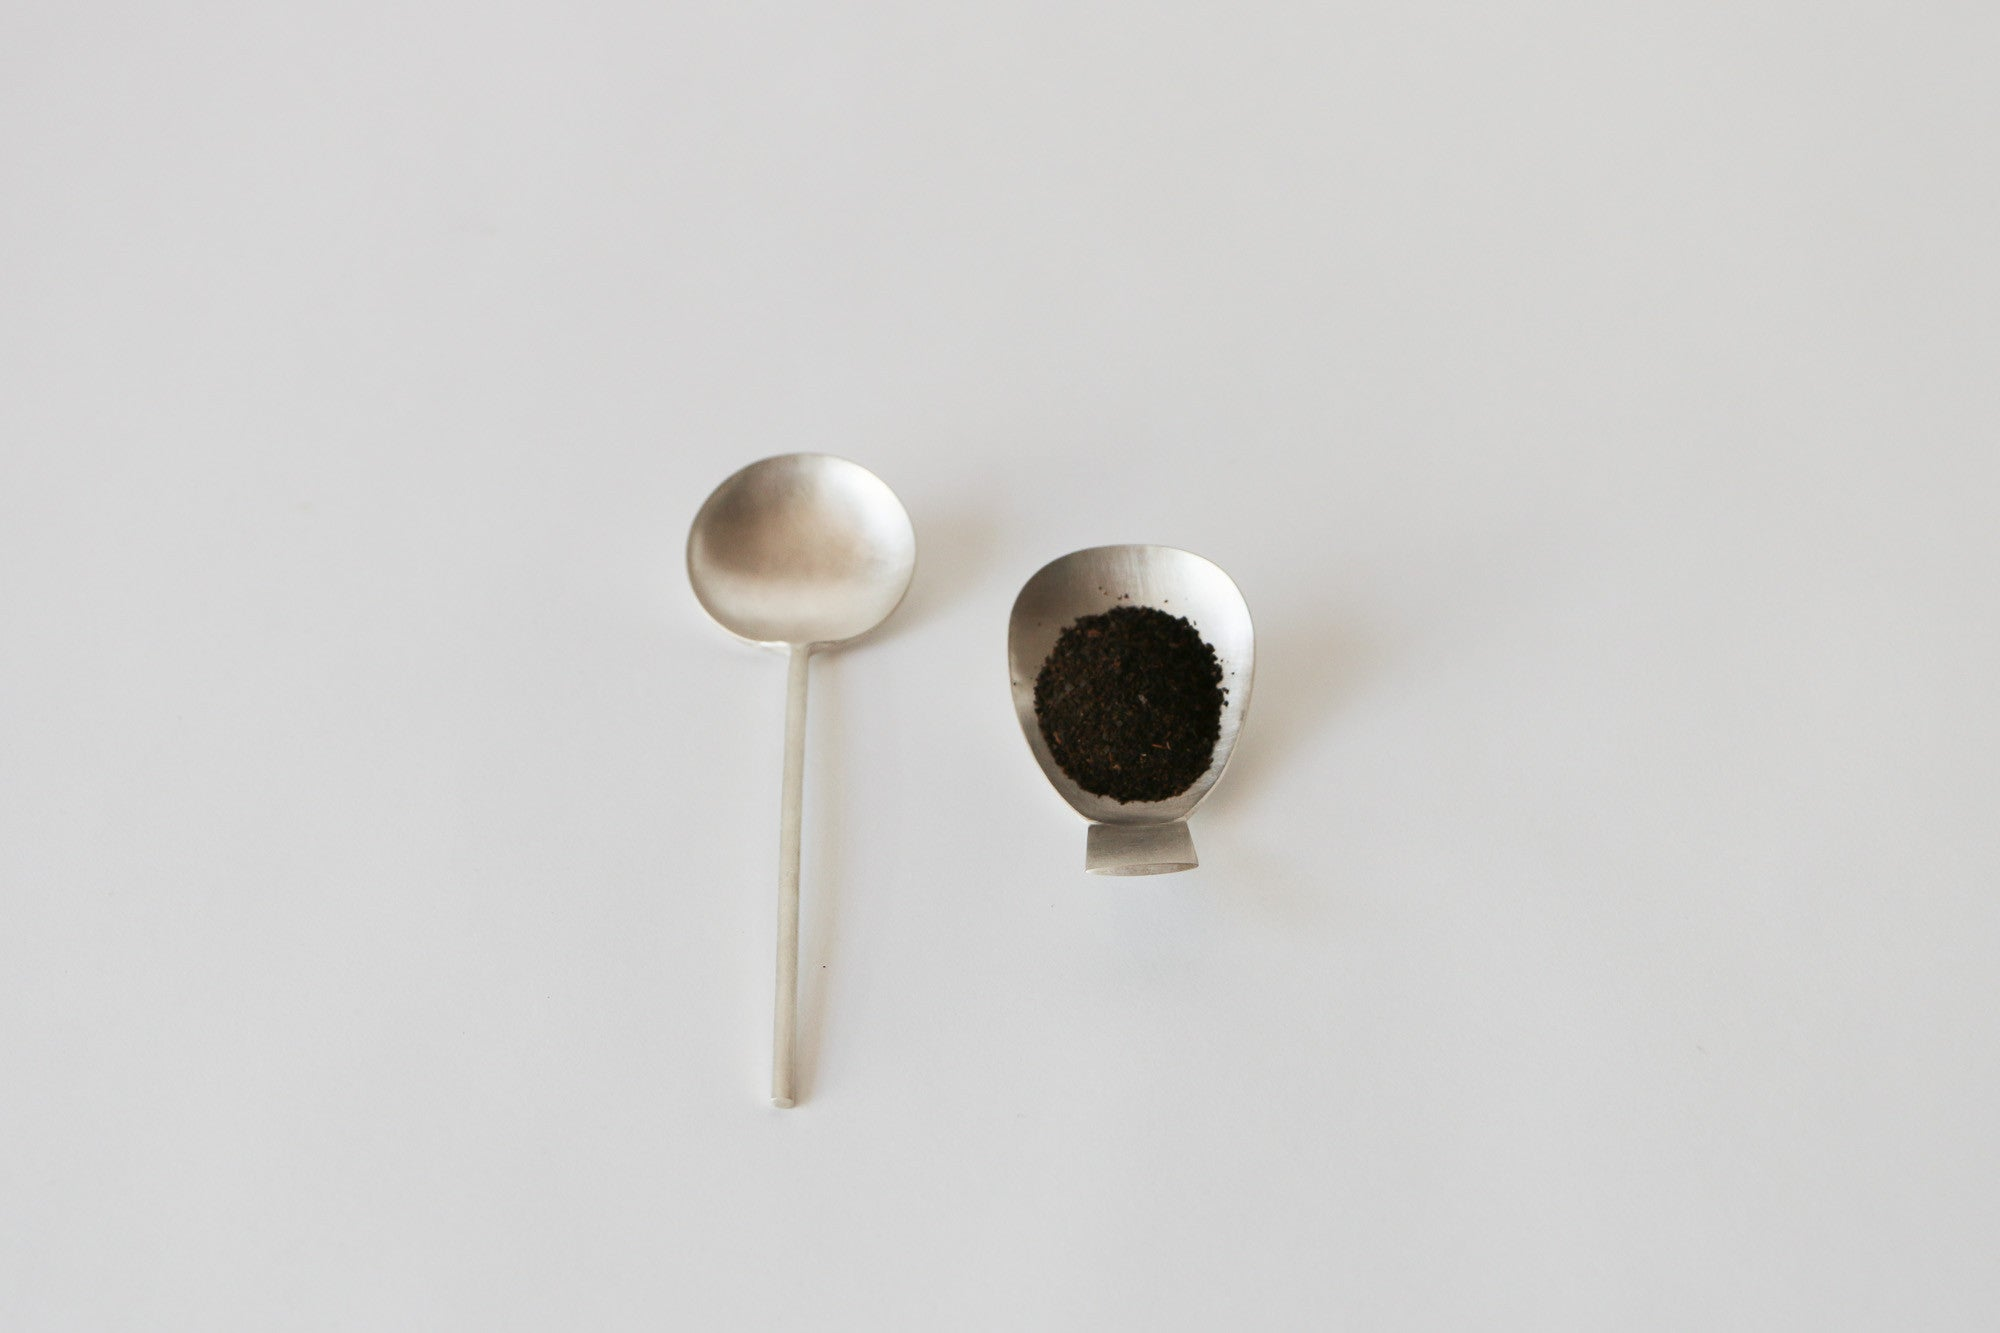 Tea Leaf Spoon